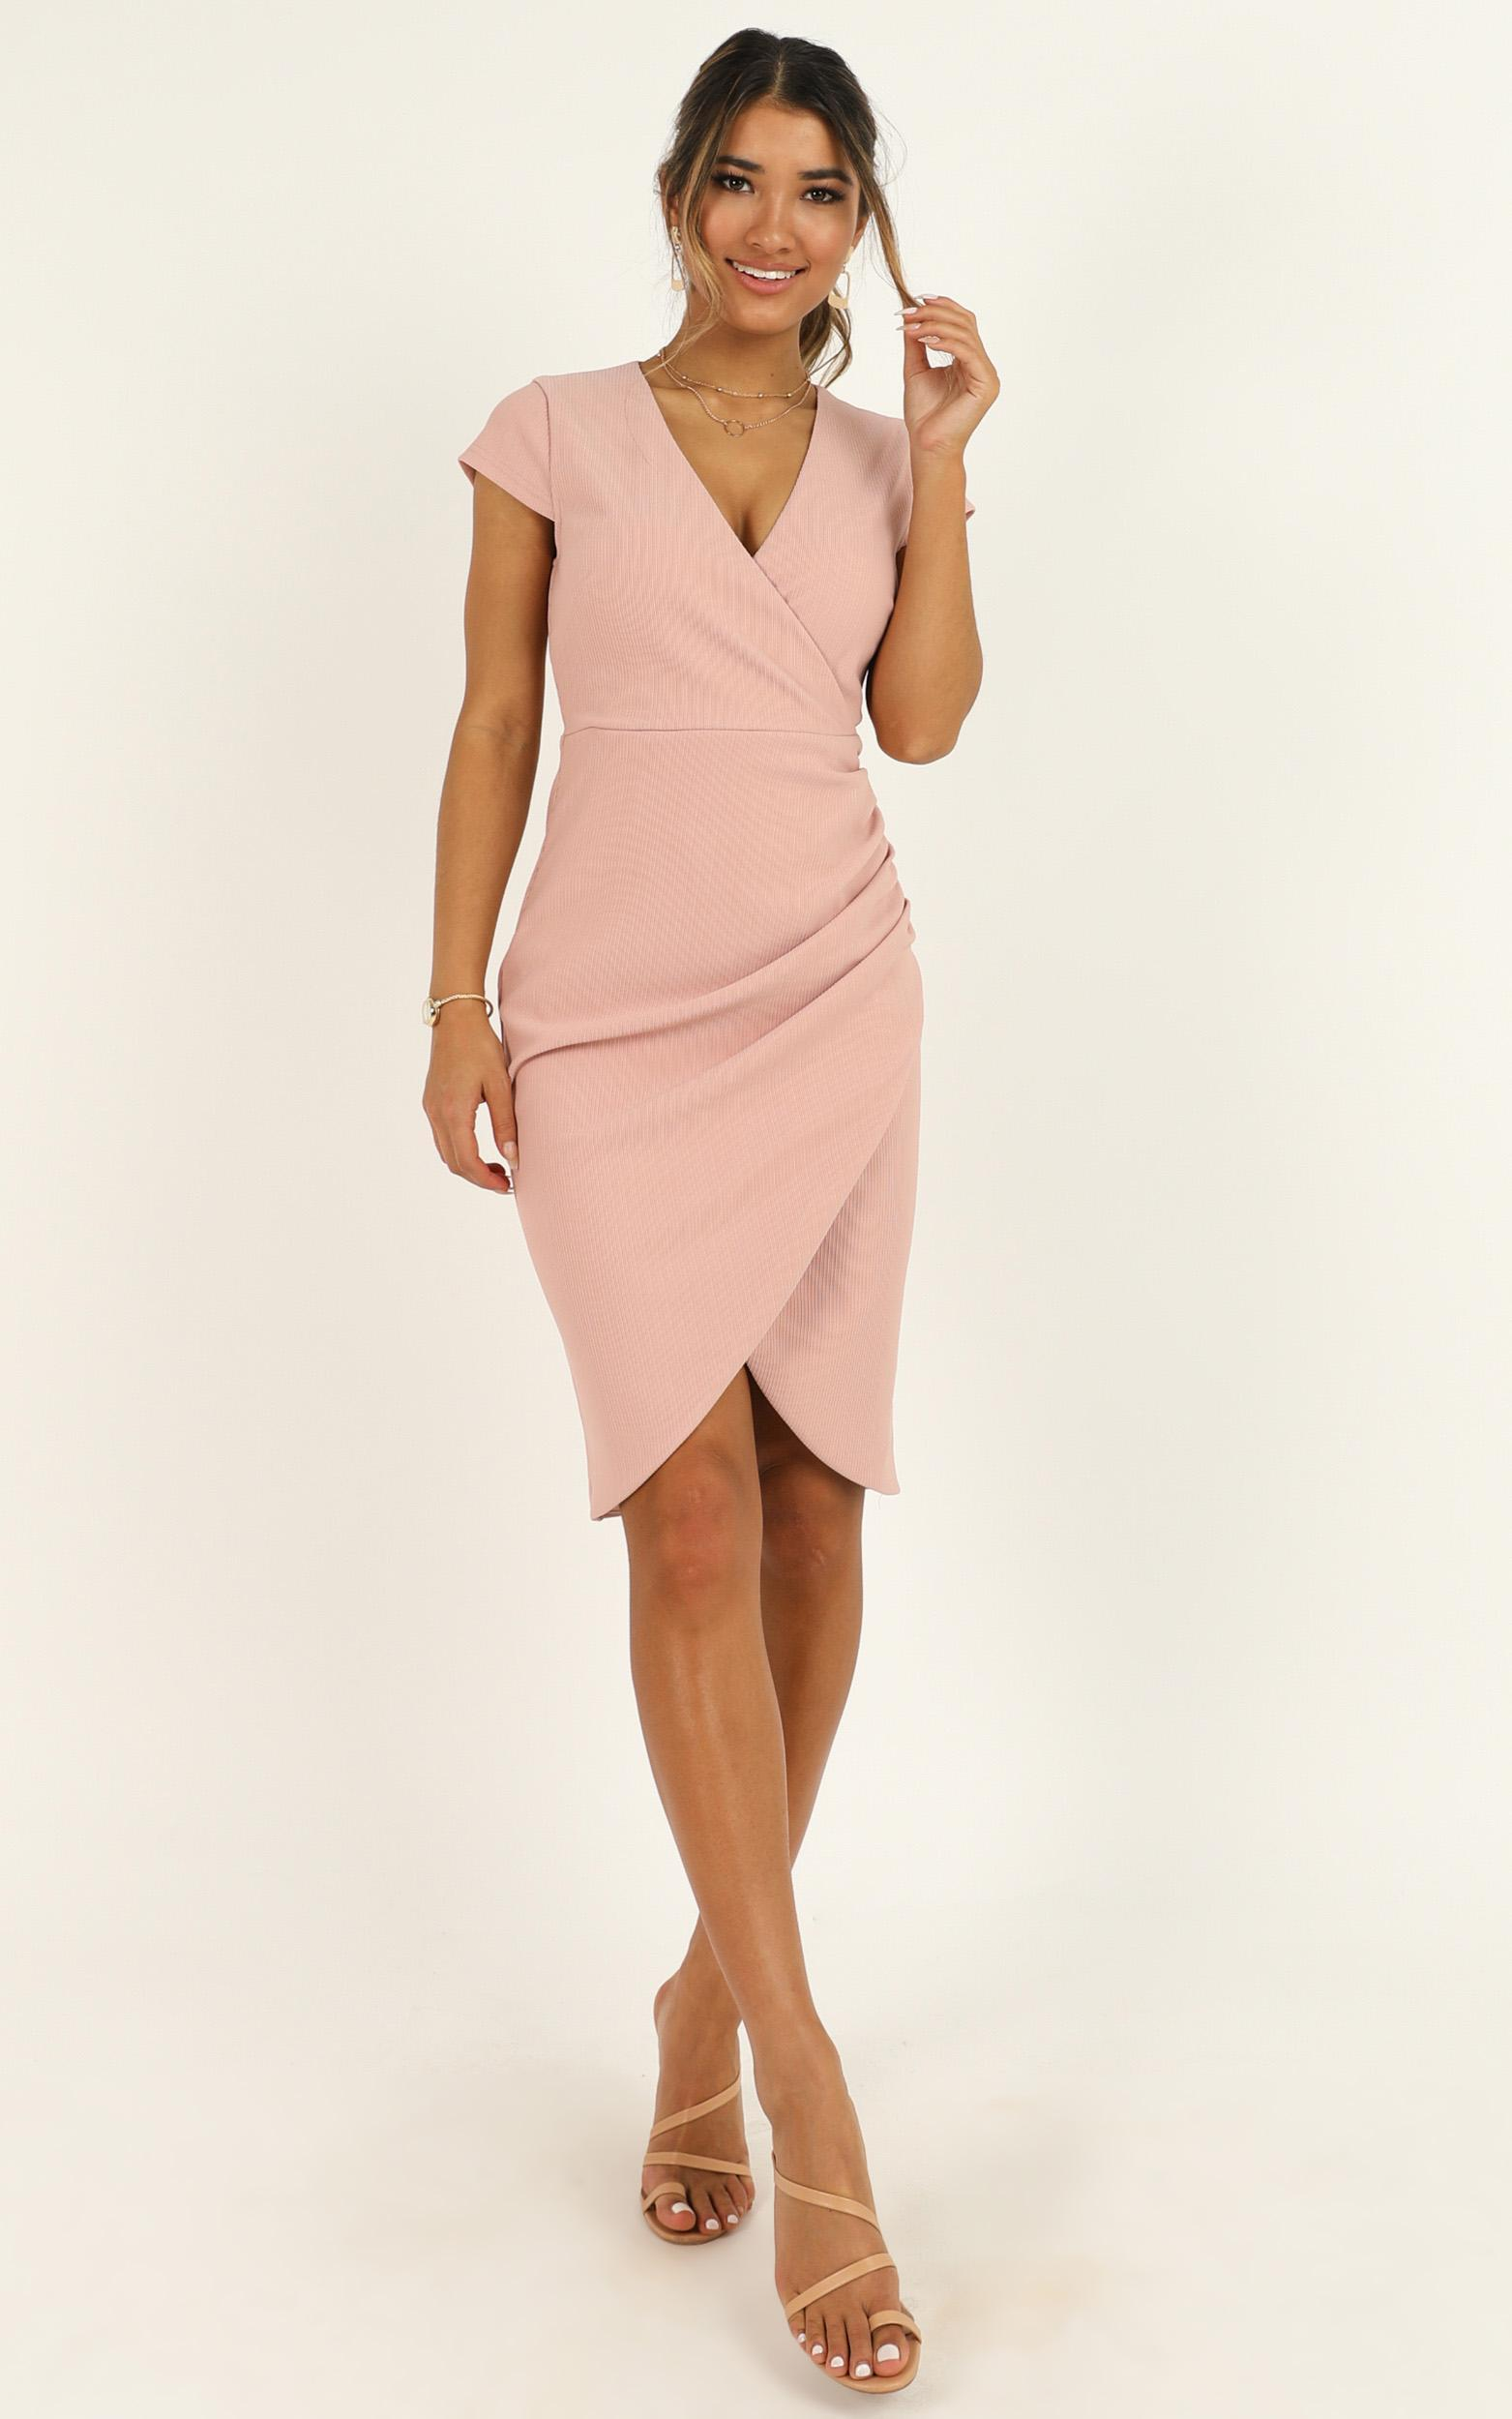 Quick Decider Dress in blush - 20 (XXXXL), Blush, hi-res image number null